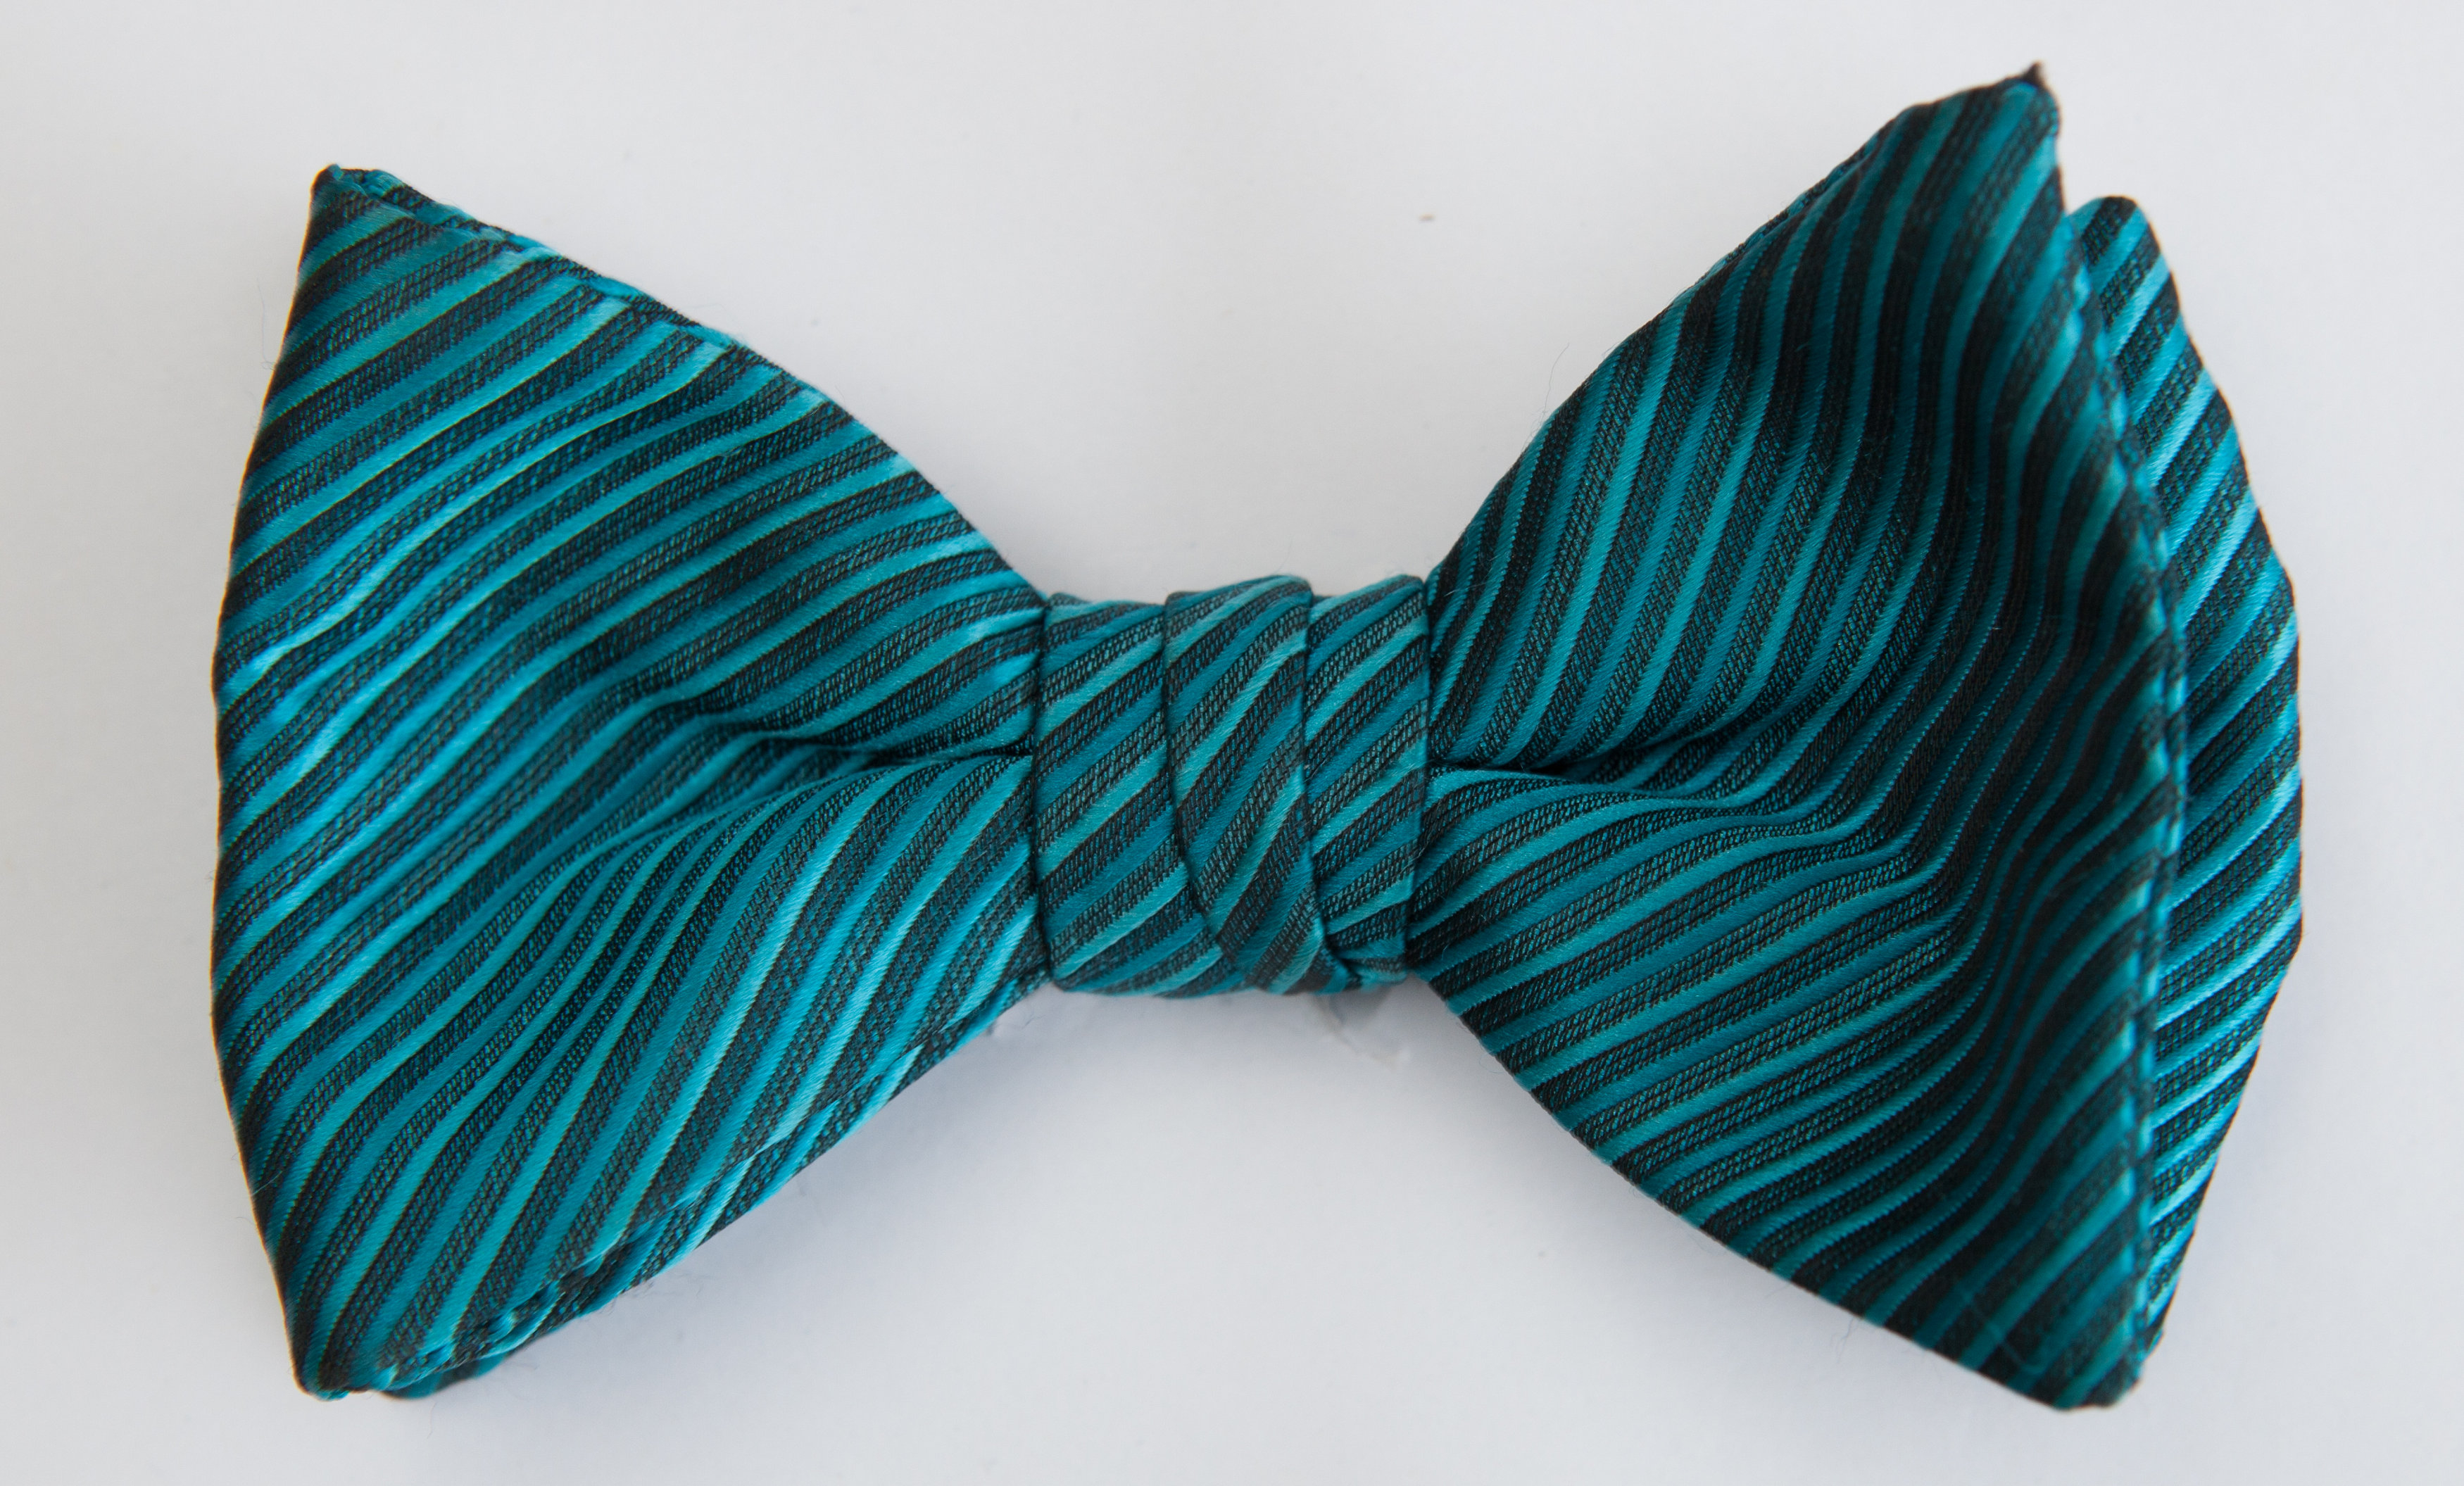 teal synergy bow tie classic tuxedos suits